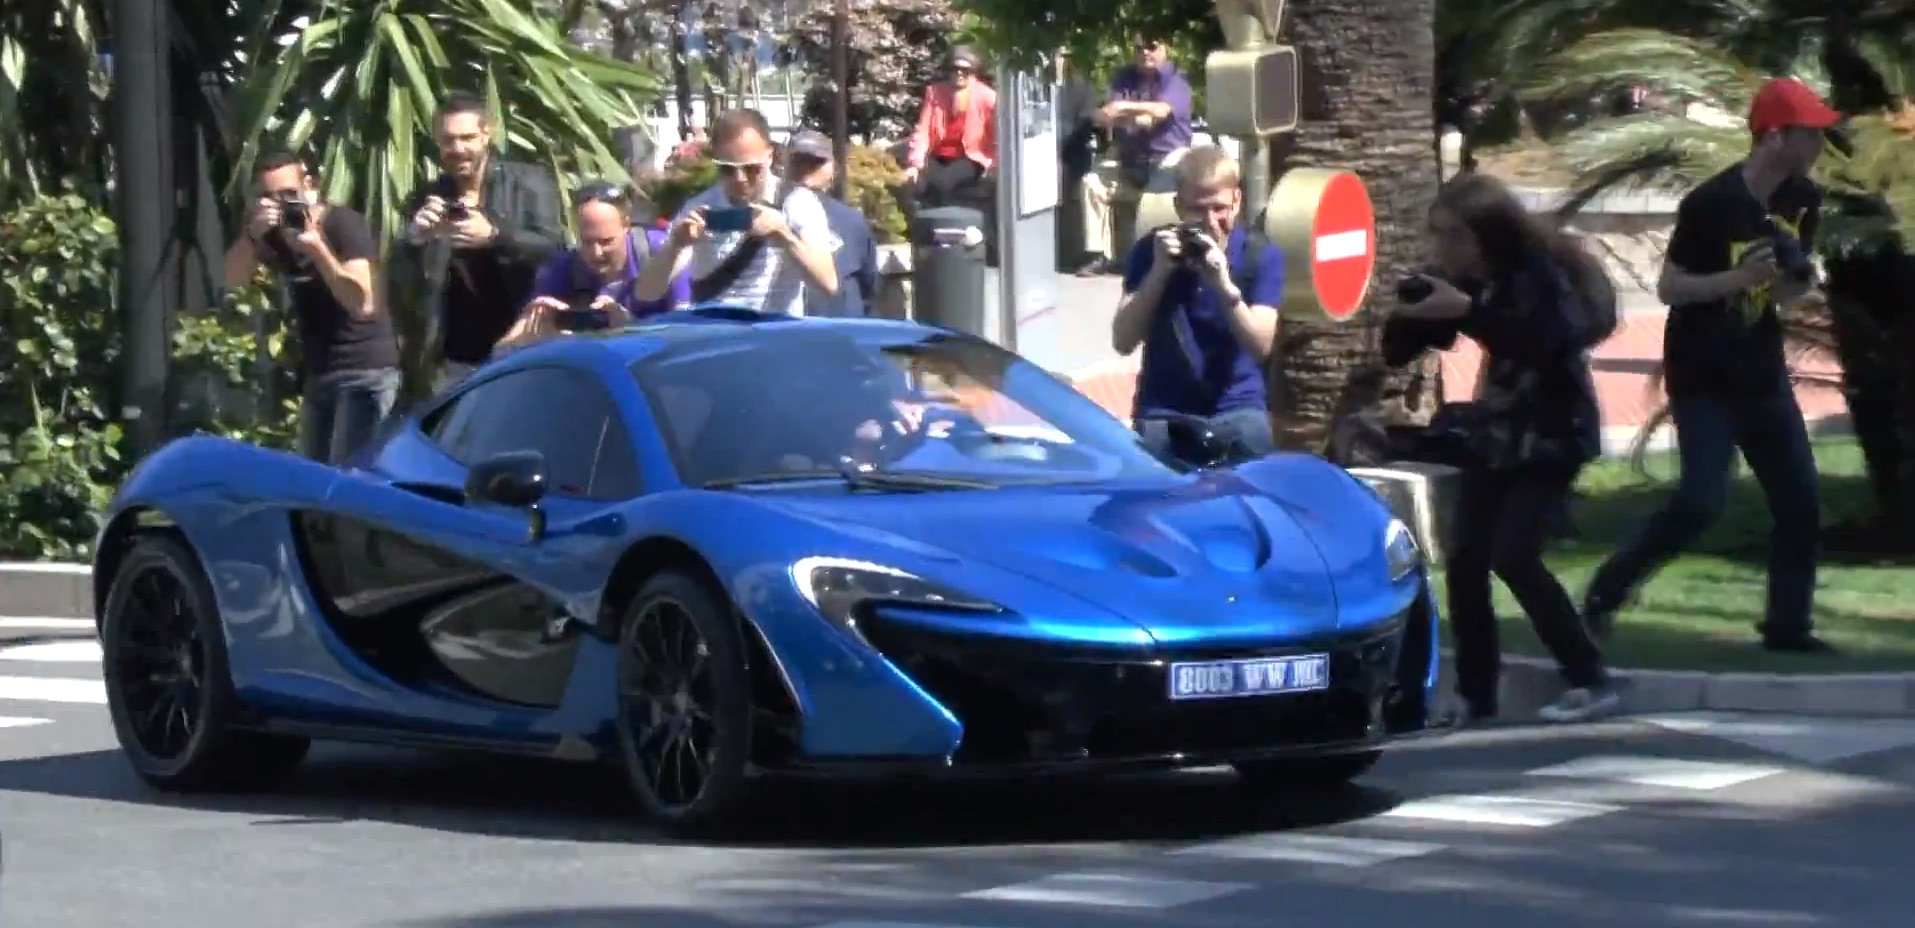 pagani zonda f1 with Lewis Hamiltons Mclaren P1 Effortlessly Causes A Stir In Monaco Video 94729 on Mazda rx3 1024x680 additionally Carmania12 weebly additionally Honda Civic Type R The New 2017 Hot Hatch Revealed as well Ferrari Coloring Pages further Watch.